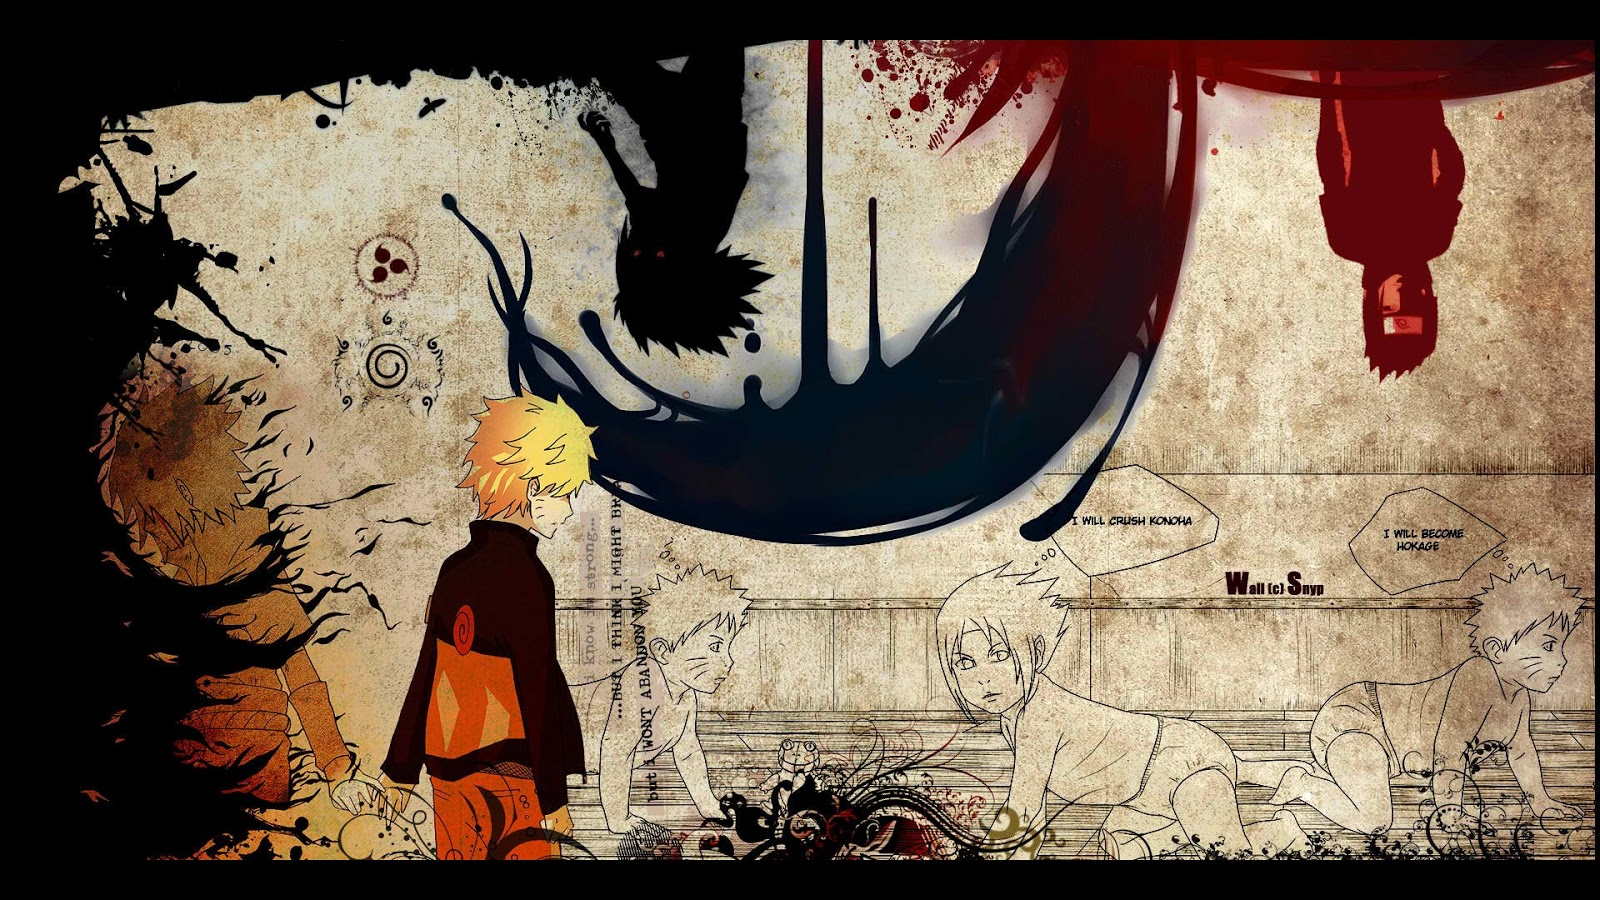 Wallpaper Animasi 3d Bergerak Naruto Untuk Laptop Windows